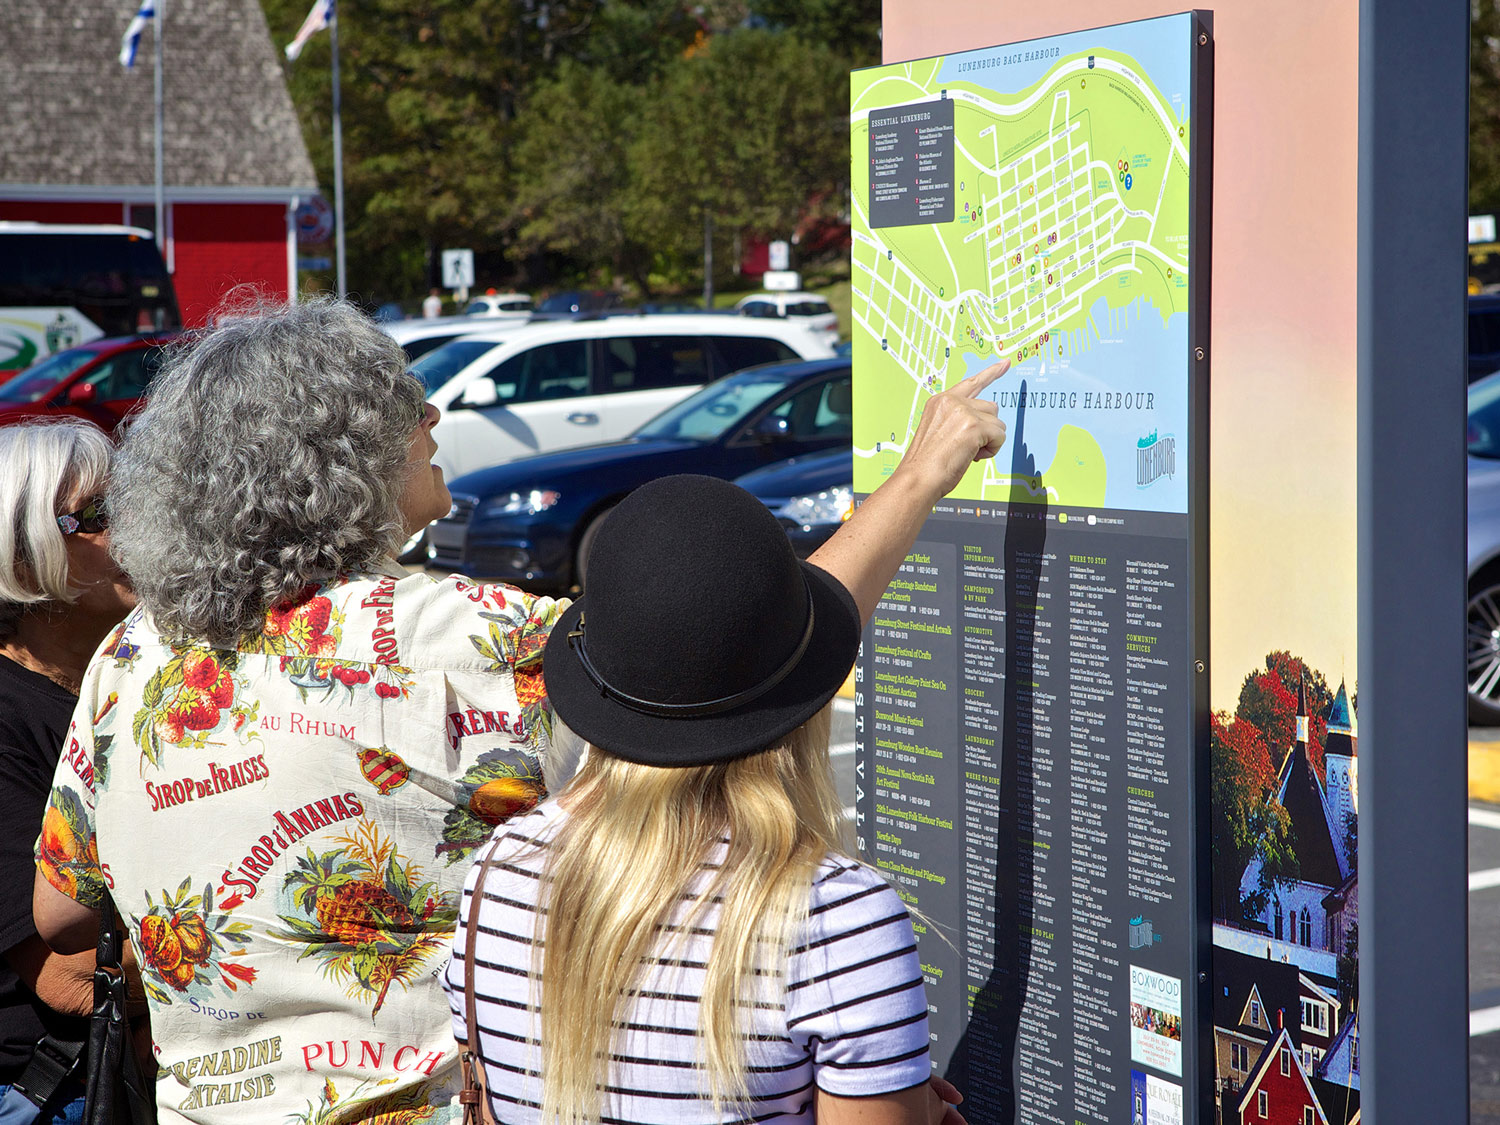 UPDATED ANNUALLY Map kiosks sited in open areas give an overview of the town and communicate events and amenities. Printed maps use similar artwork.